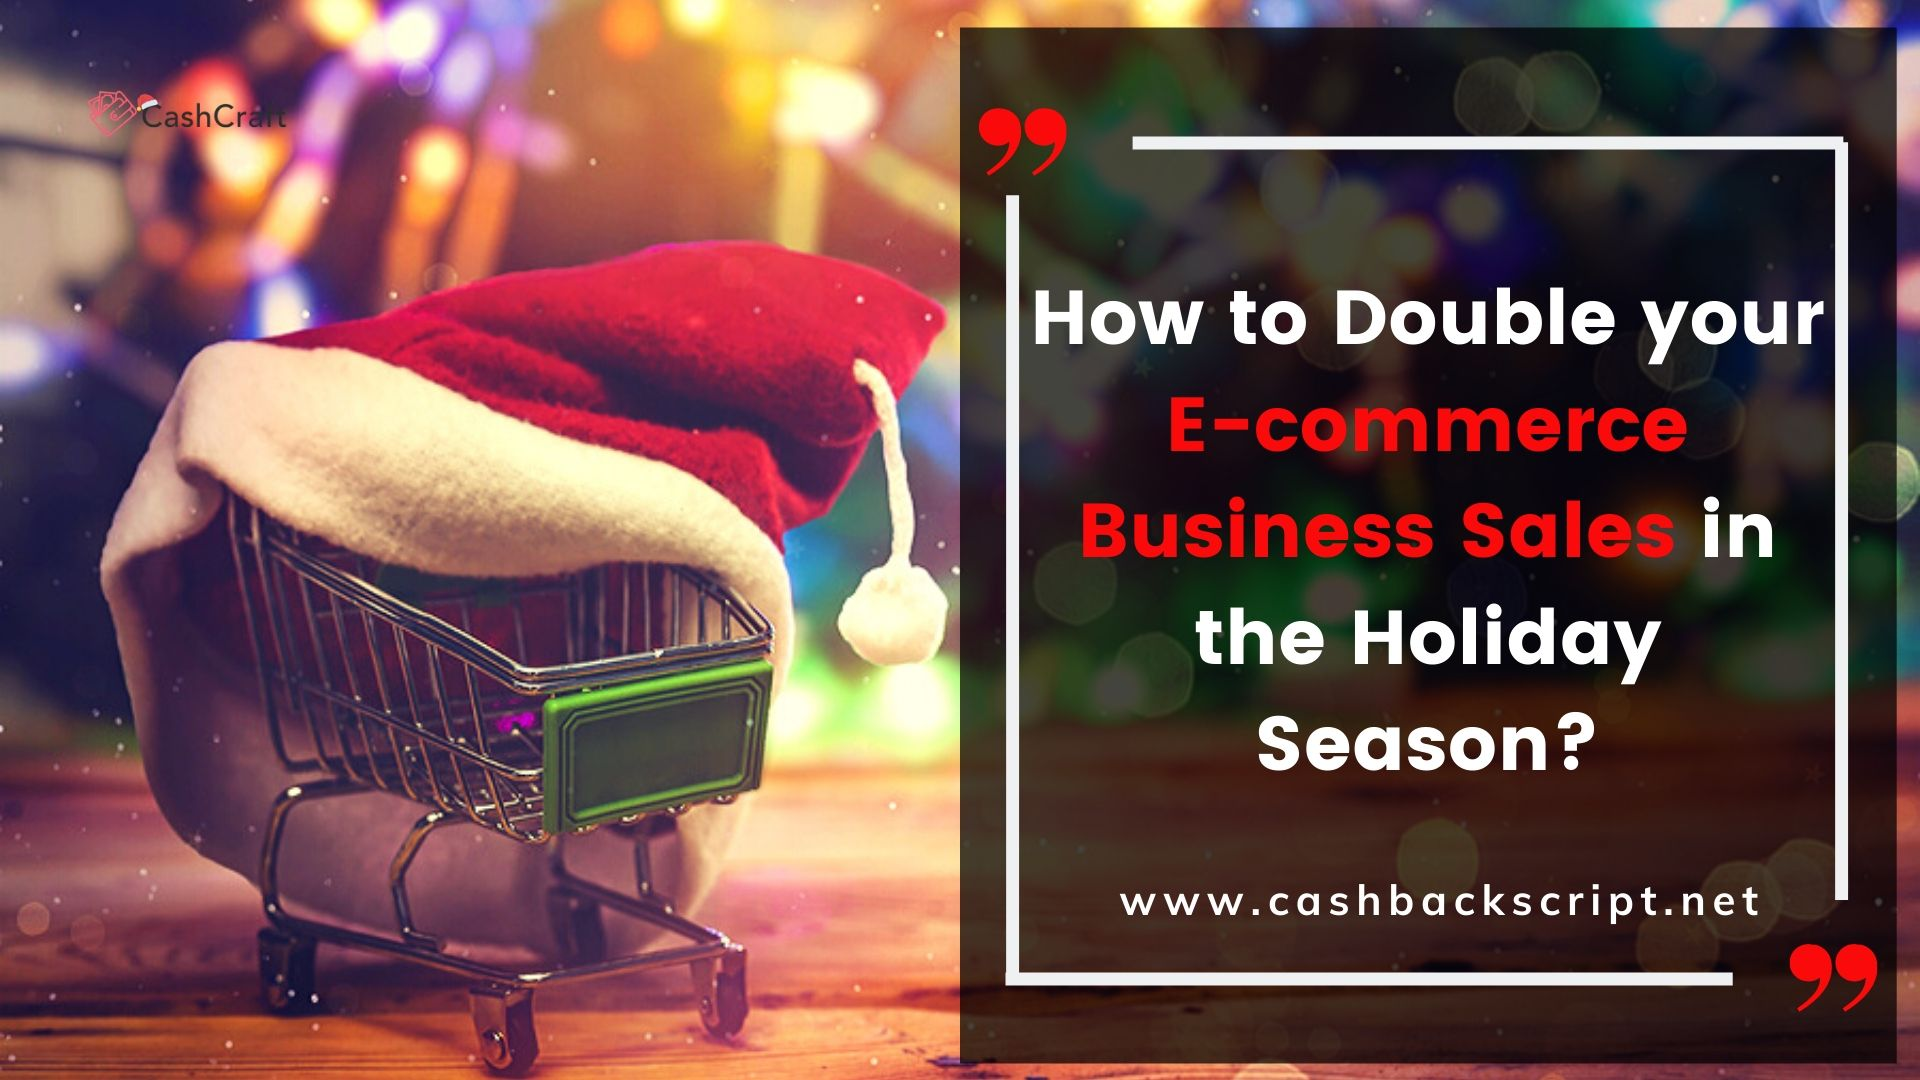 How to Double your E-commerce Business Sales in the Holiday Season?